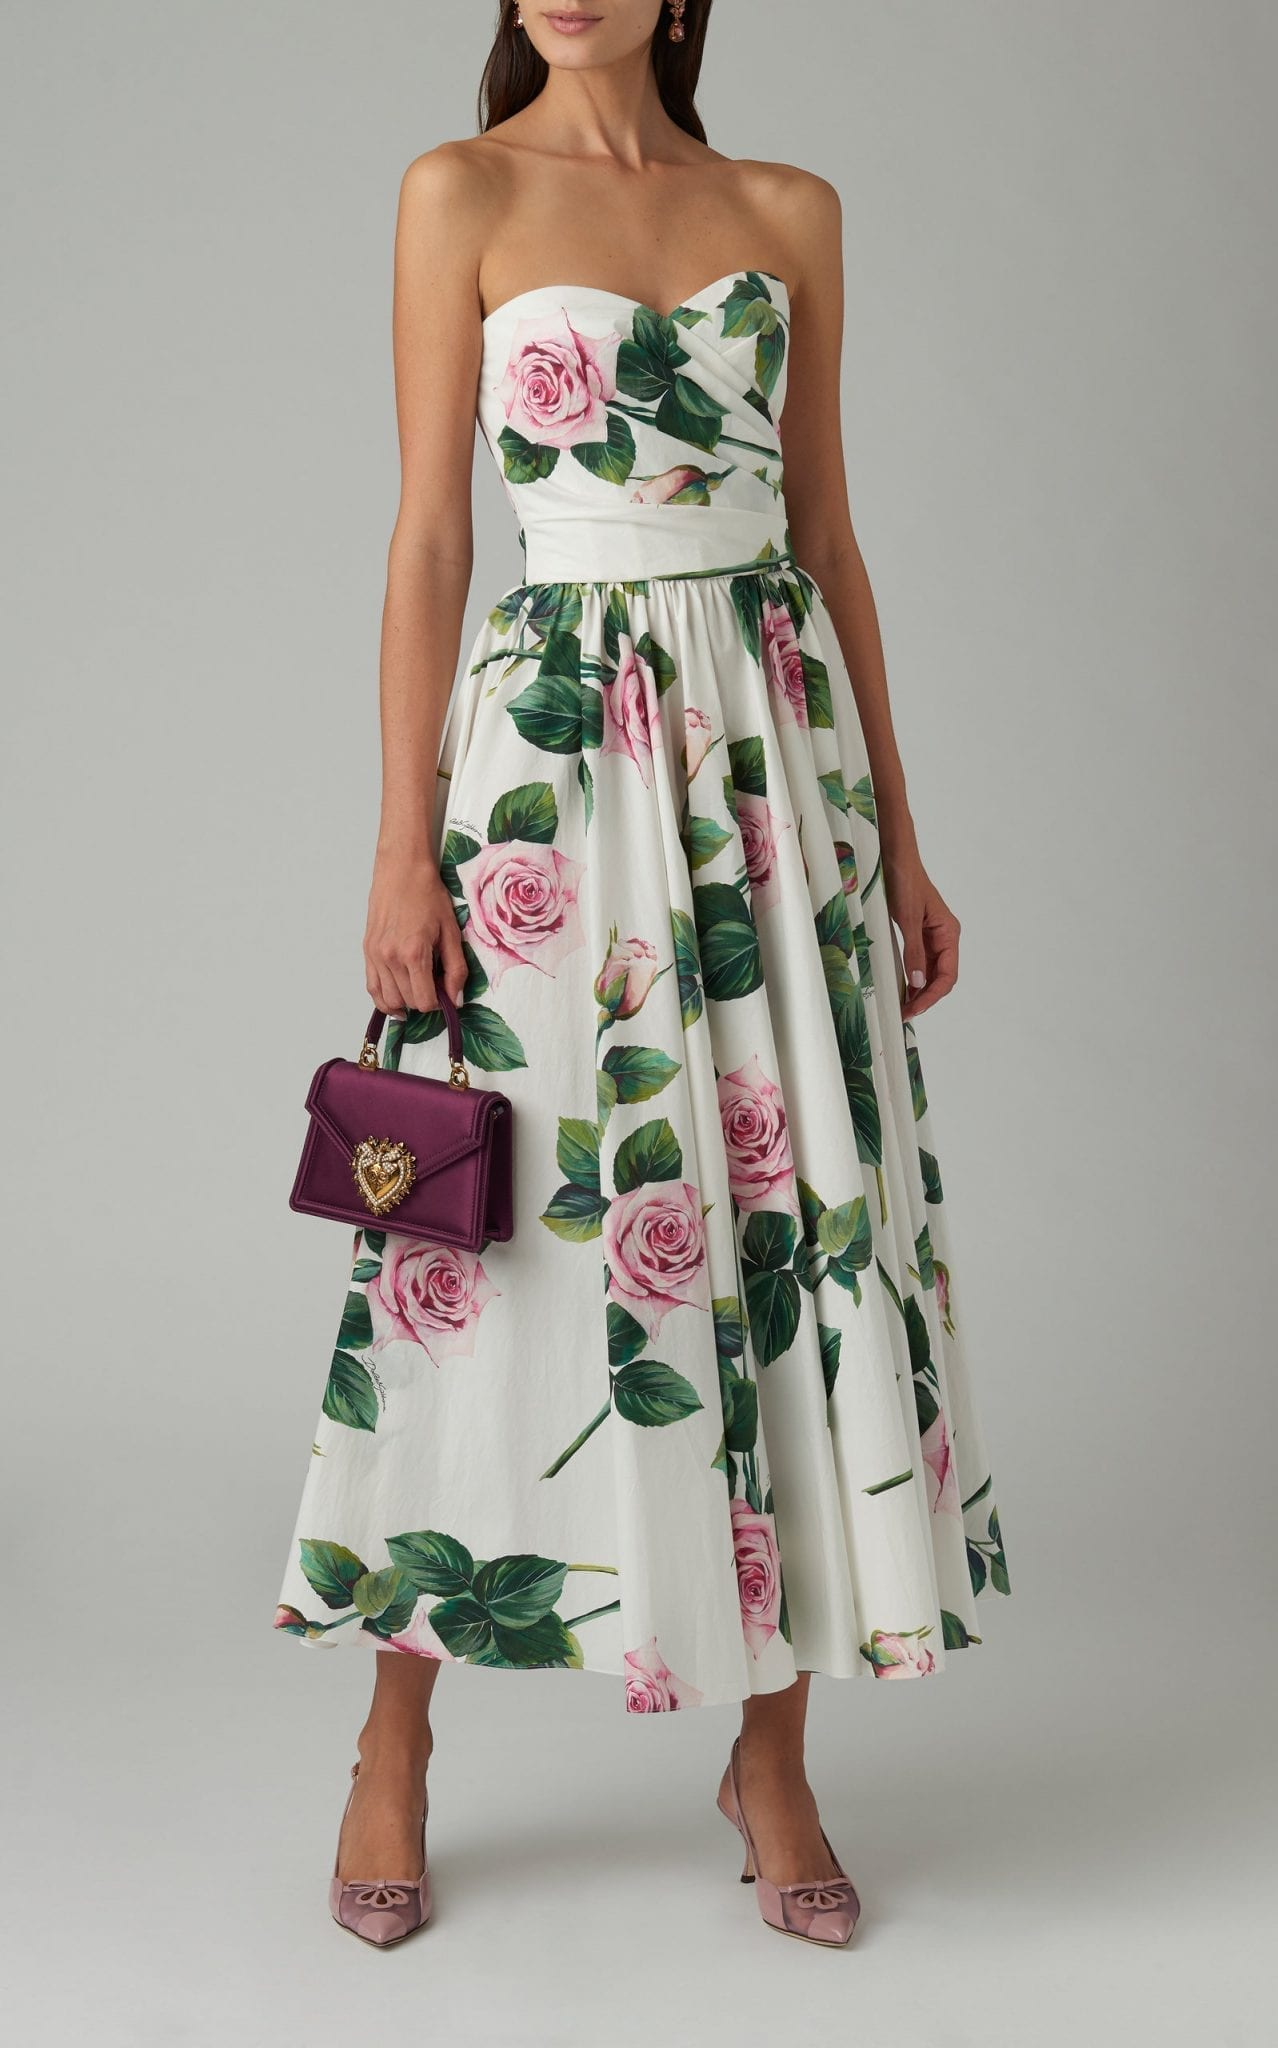 DOLCE & GABBANA Strapless Floral-Print Cotton-Poplin Midi Dress